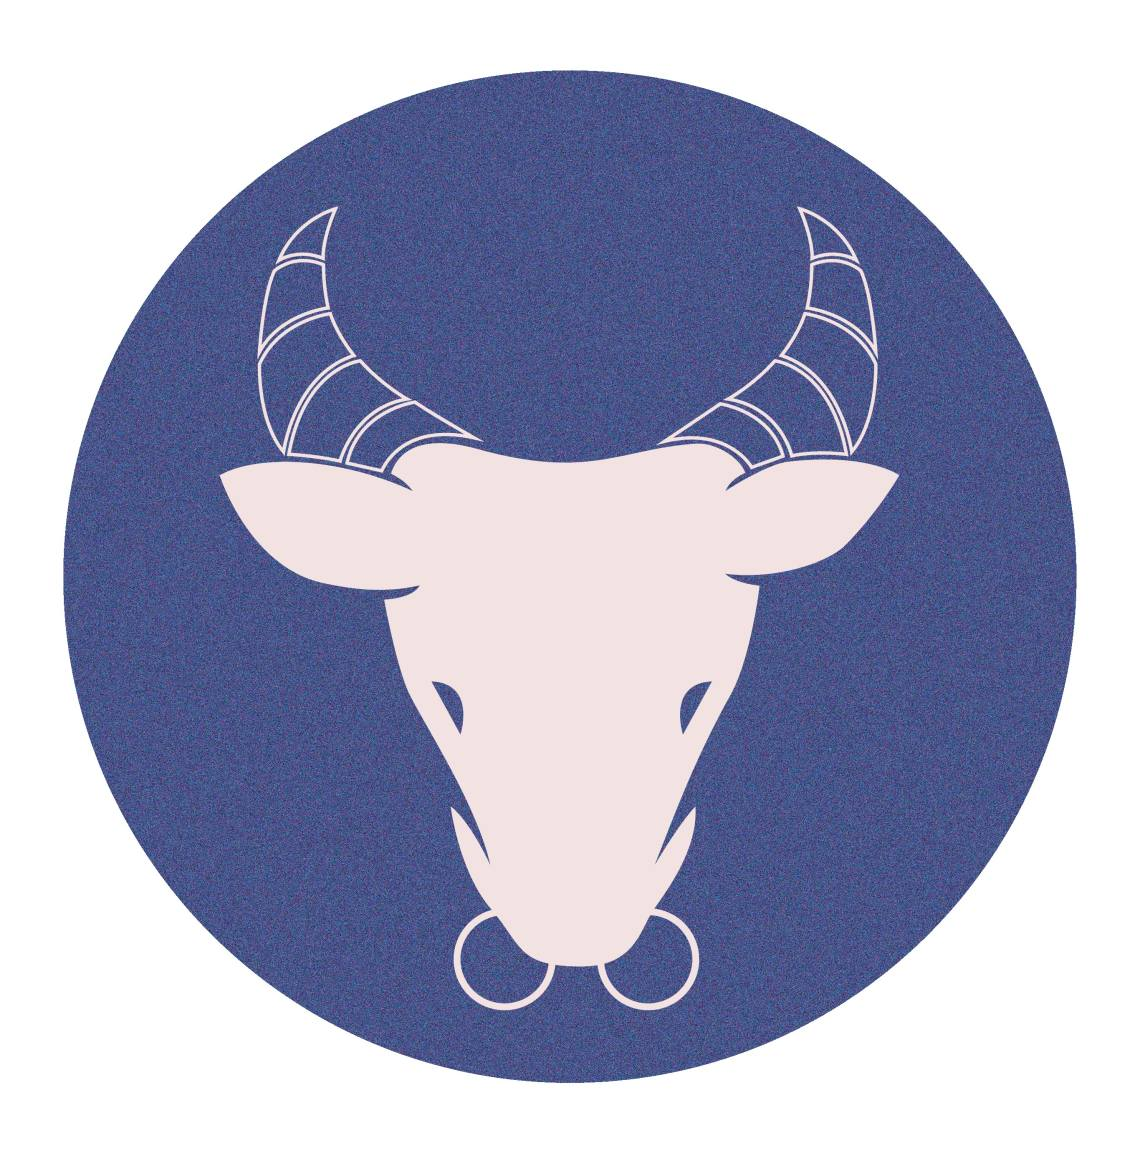 Find the daily horoscope for Taurus zodiac signs for  September 7, 2021.